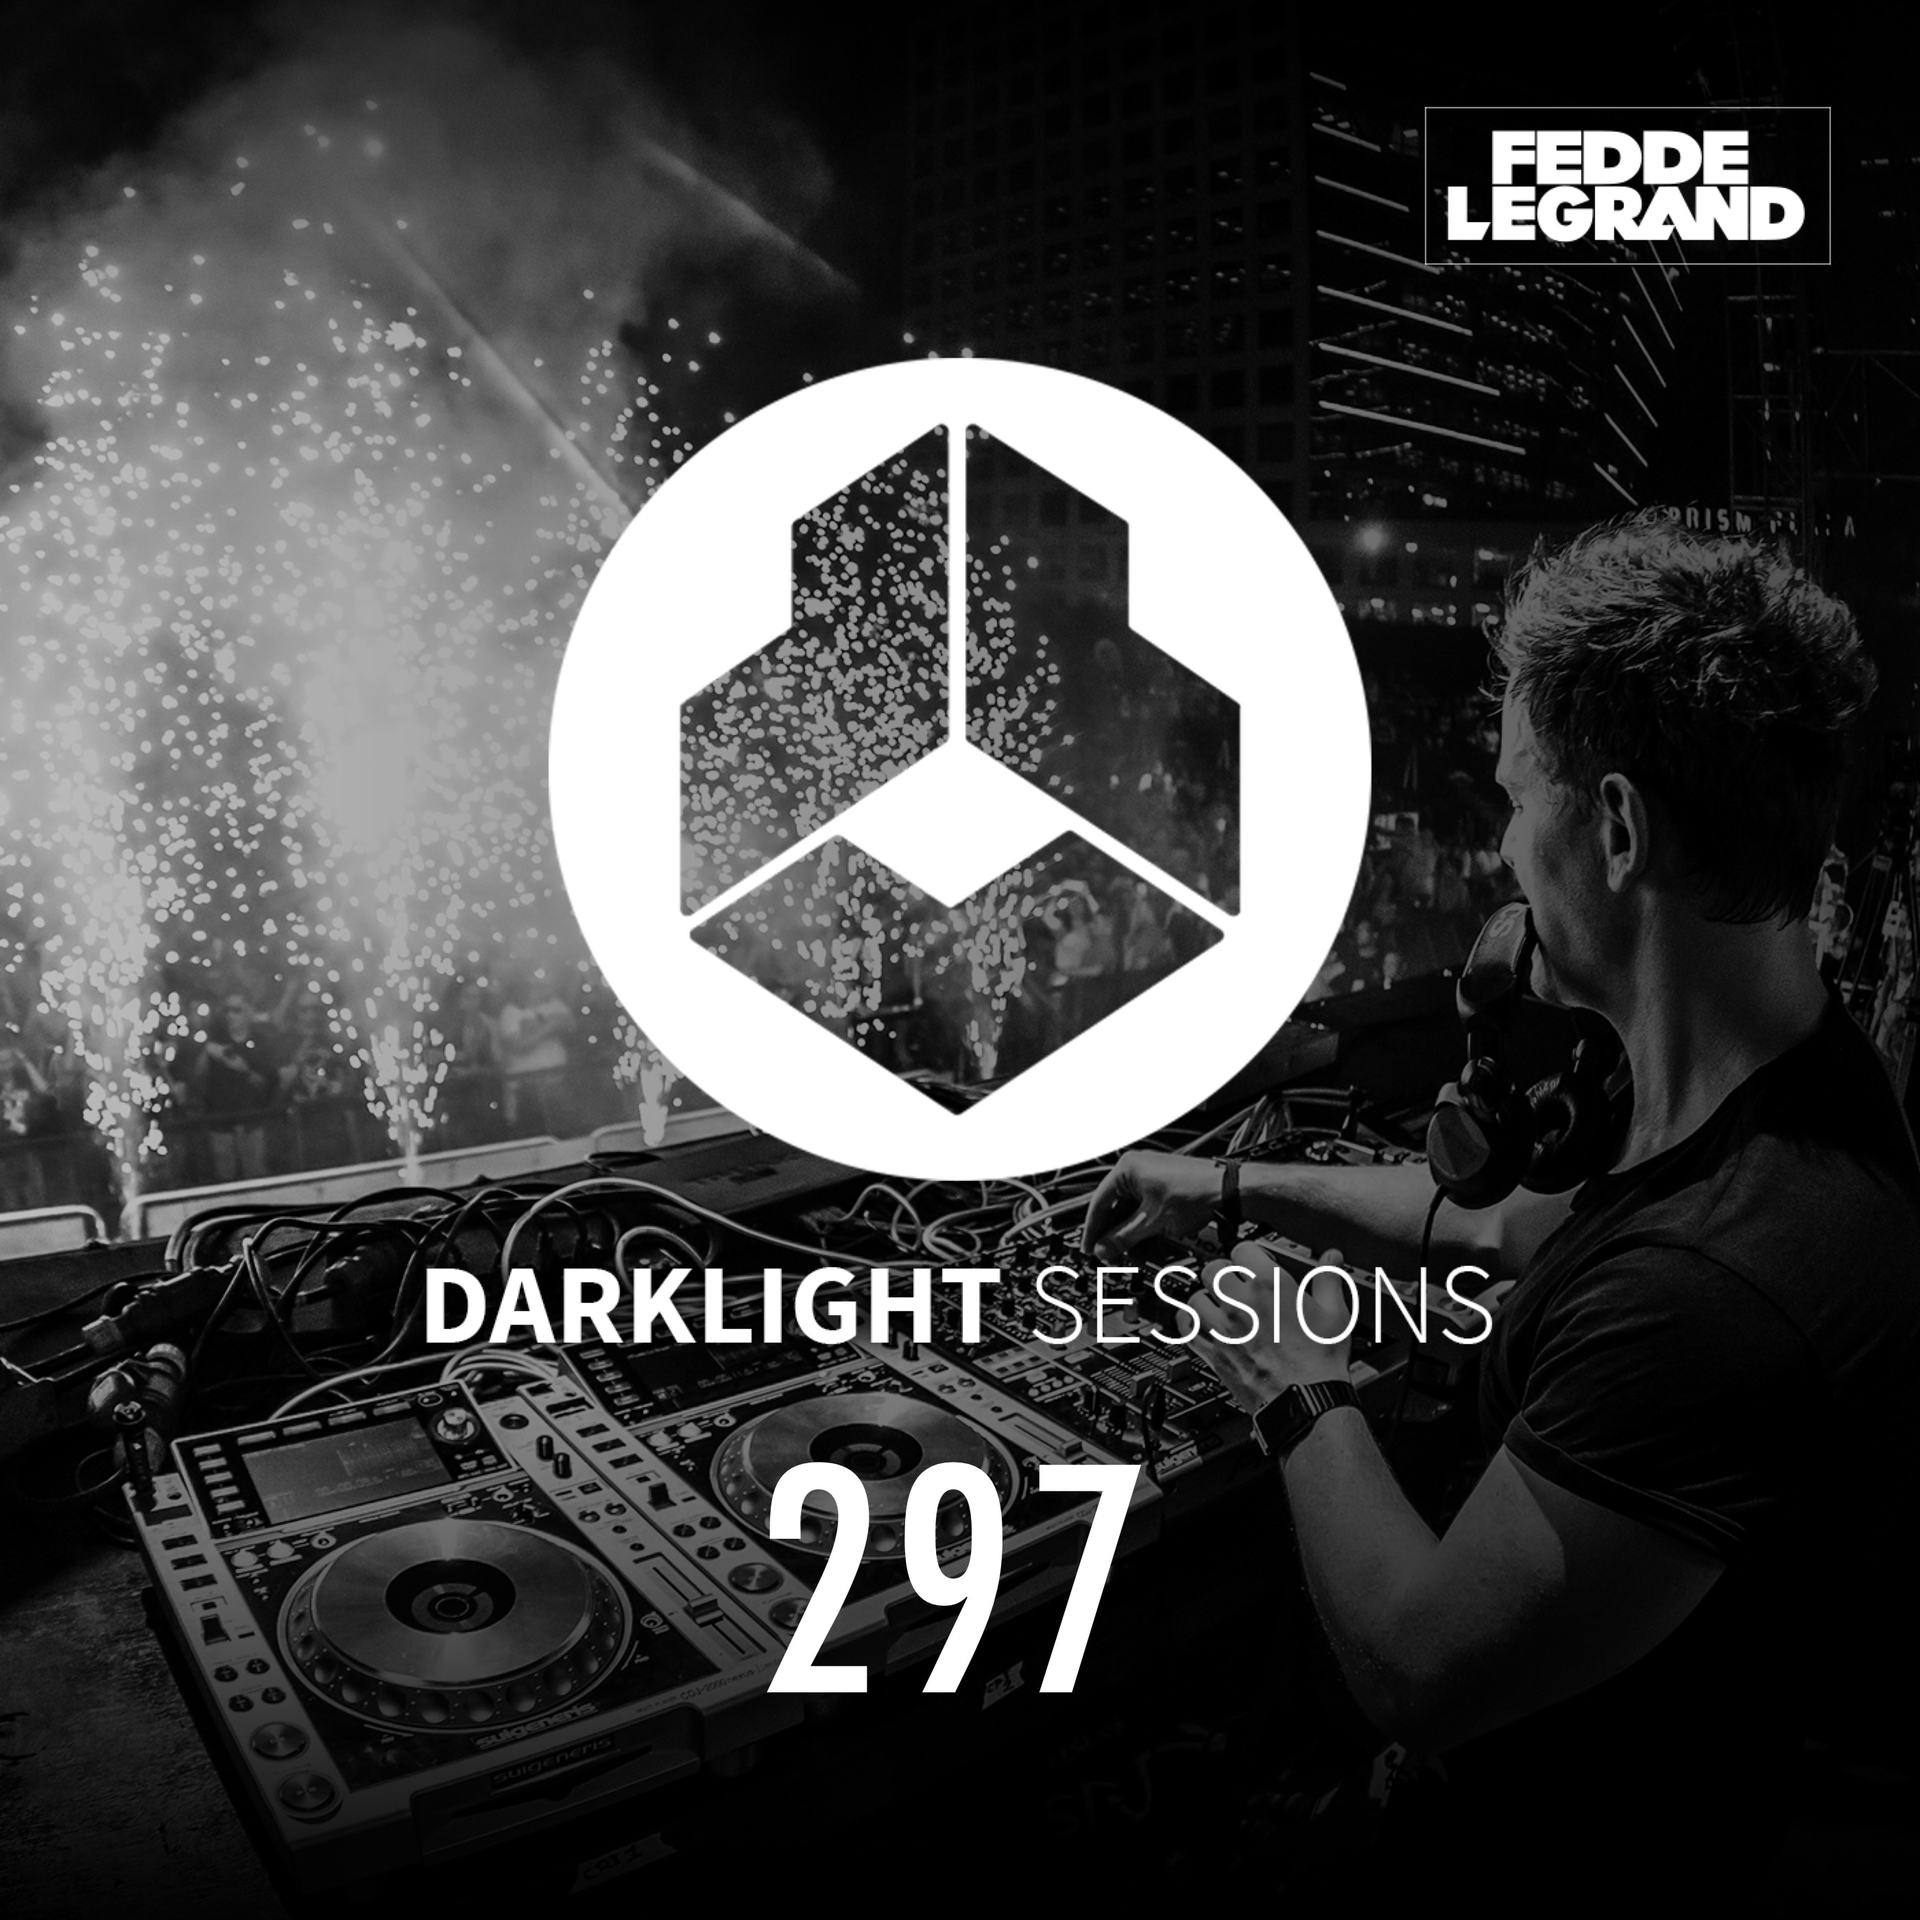 Darklight Sessions 297